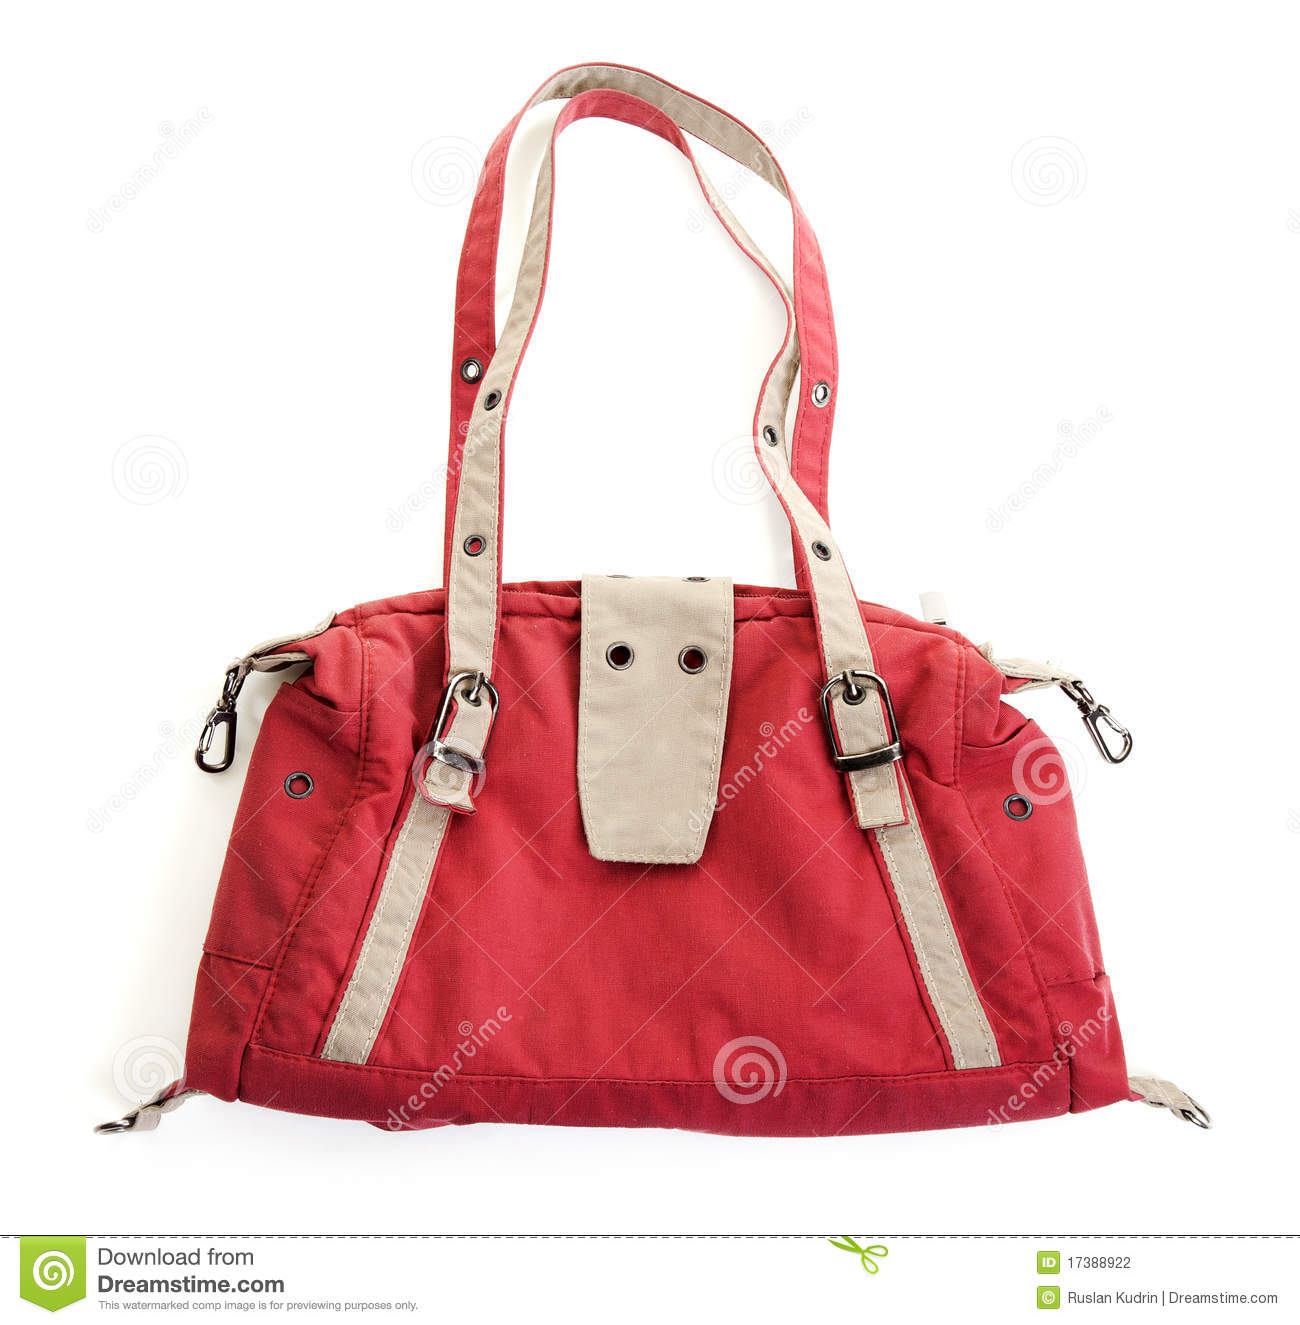 More similar stock images of ` Red handbags